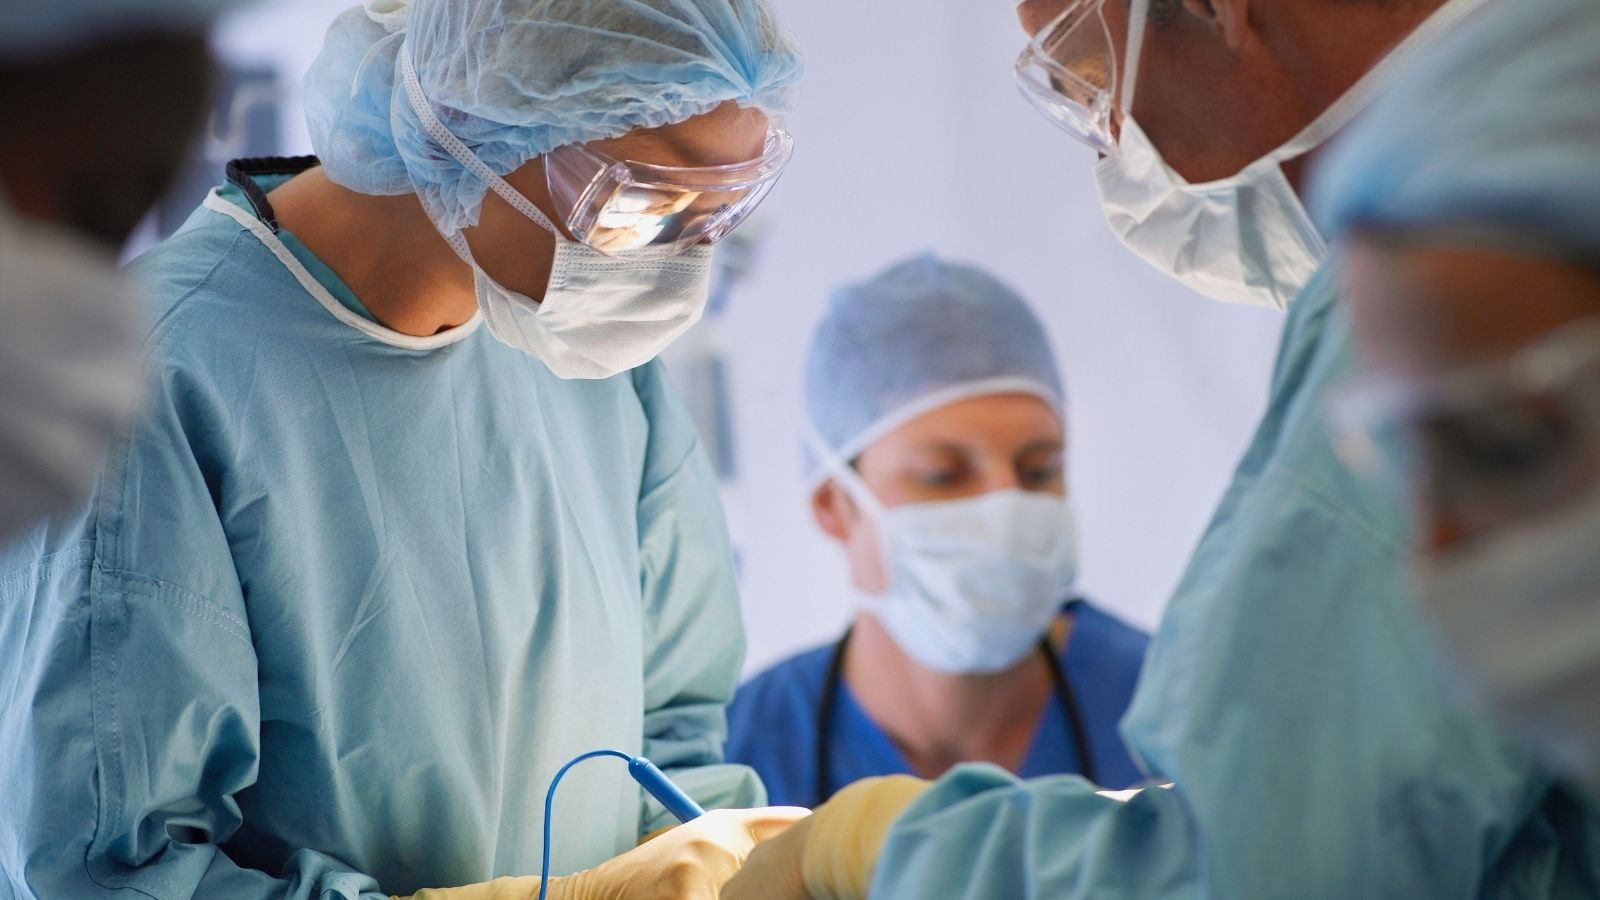 Travel allied health helping with a surgery operation while wearing scrubs.